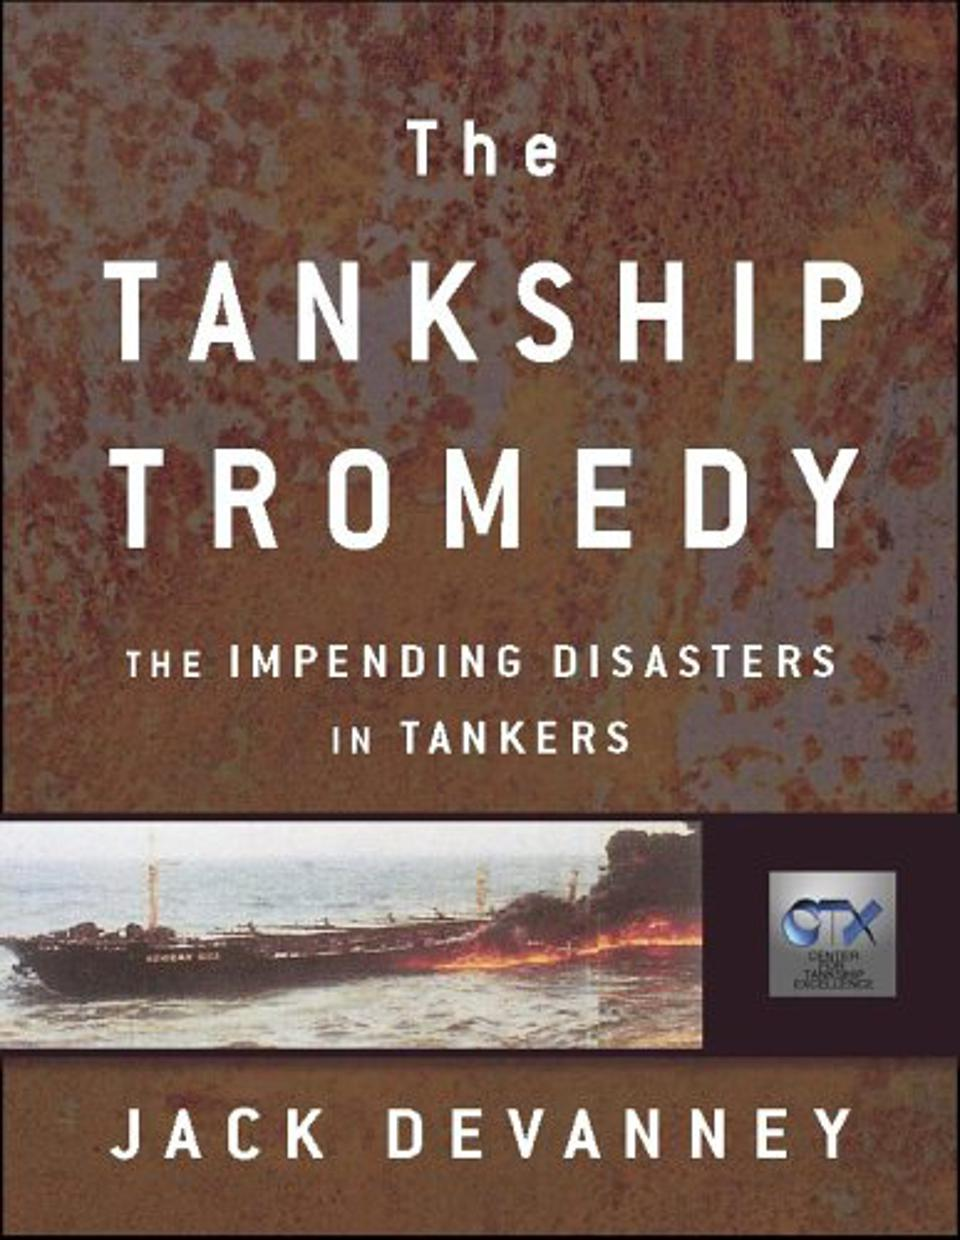 Jack Devanney's 2006 classic, The Tankship Tromedy identifies a series of underlying challenges with the global shipping industry